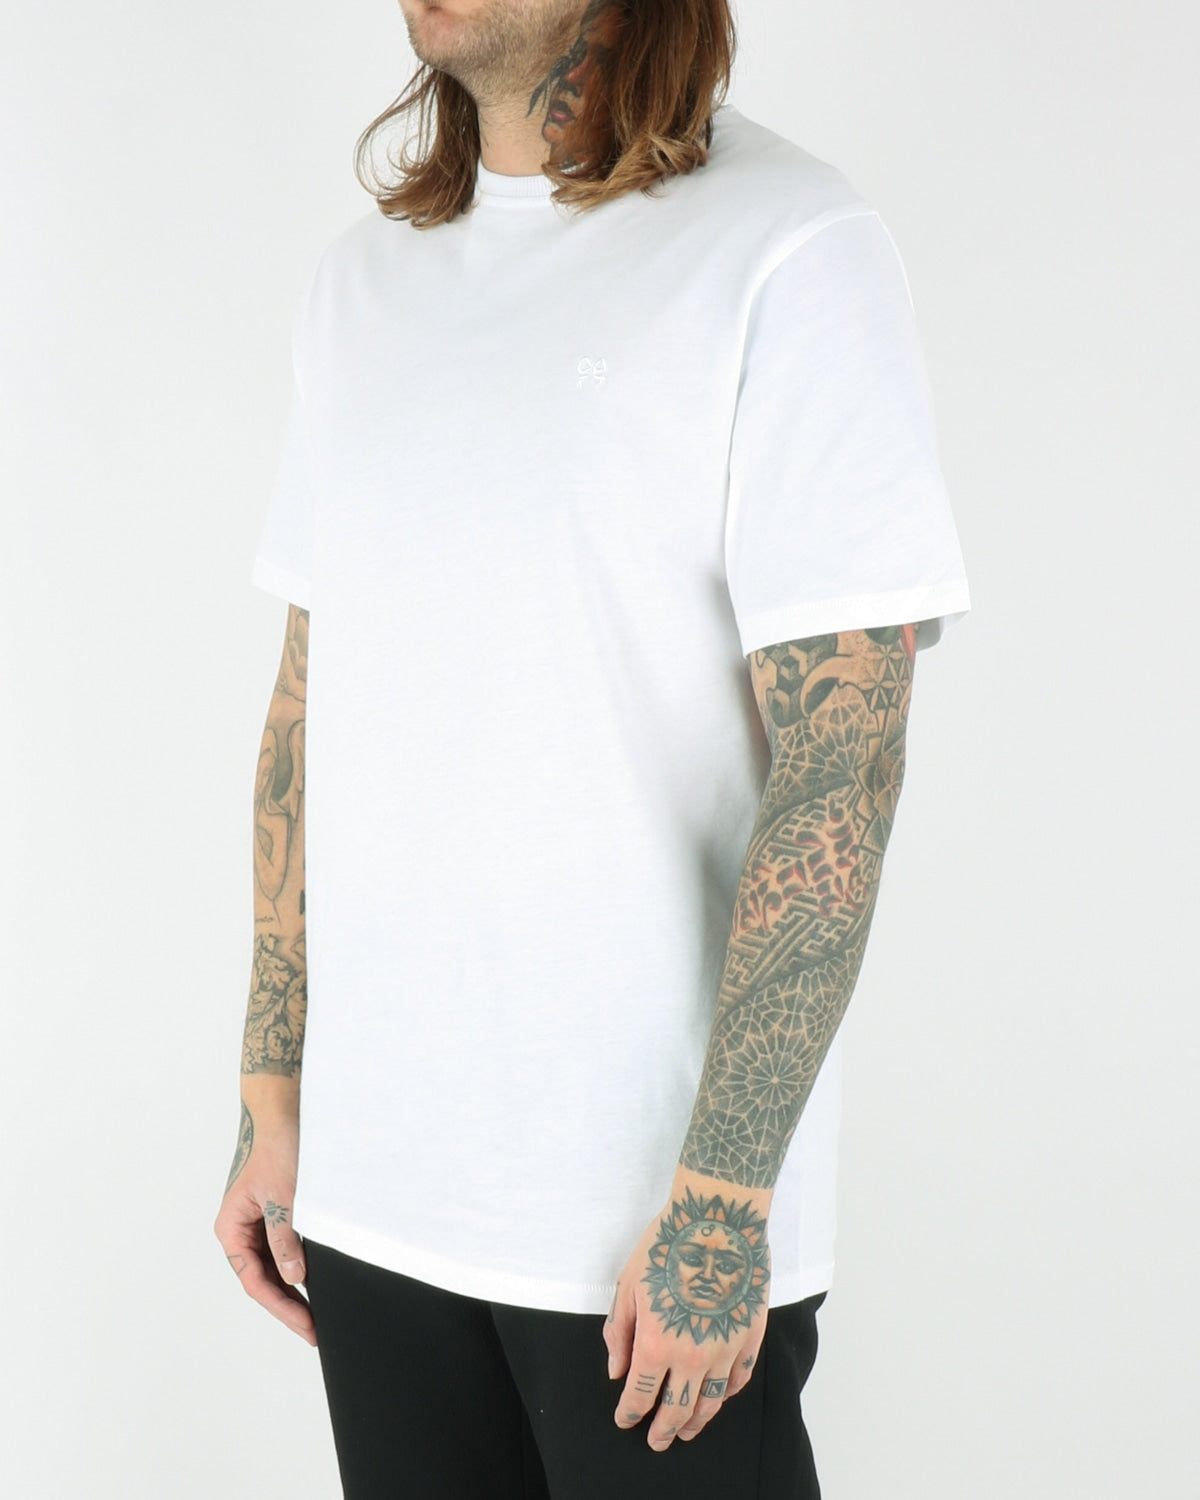 soulland_whatever t-shirt_white_view_2_3